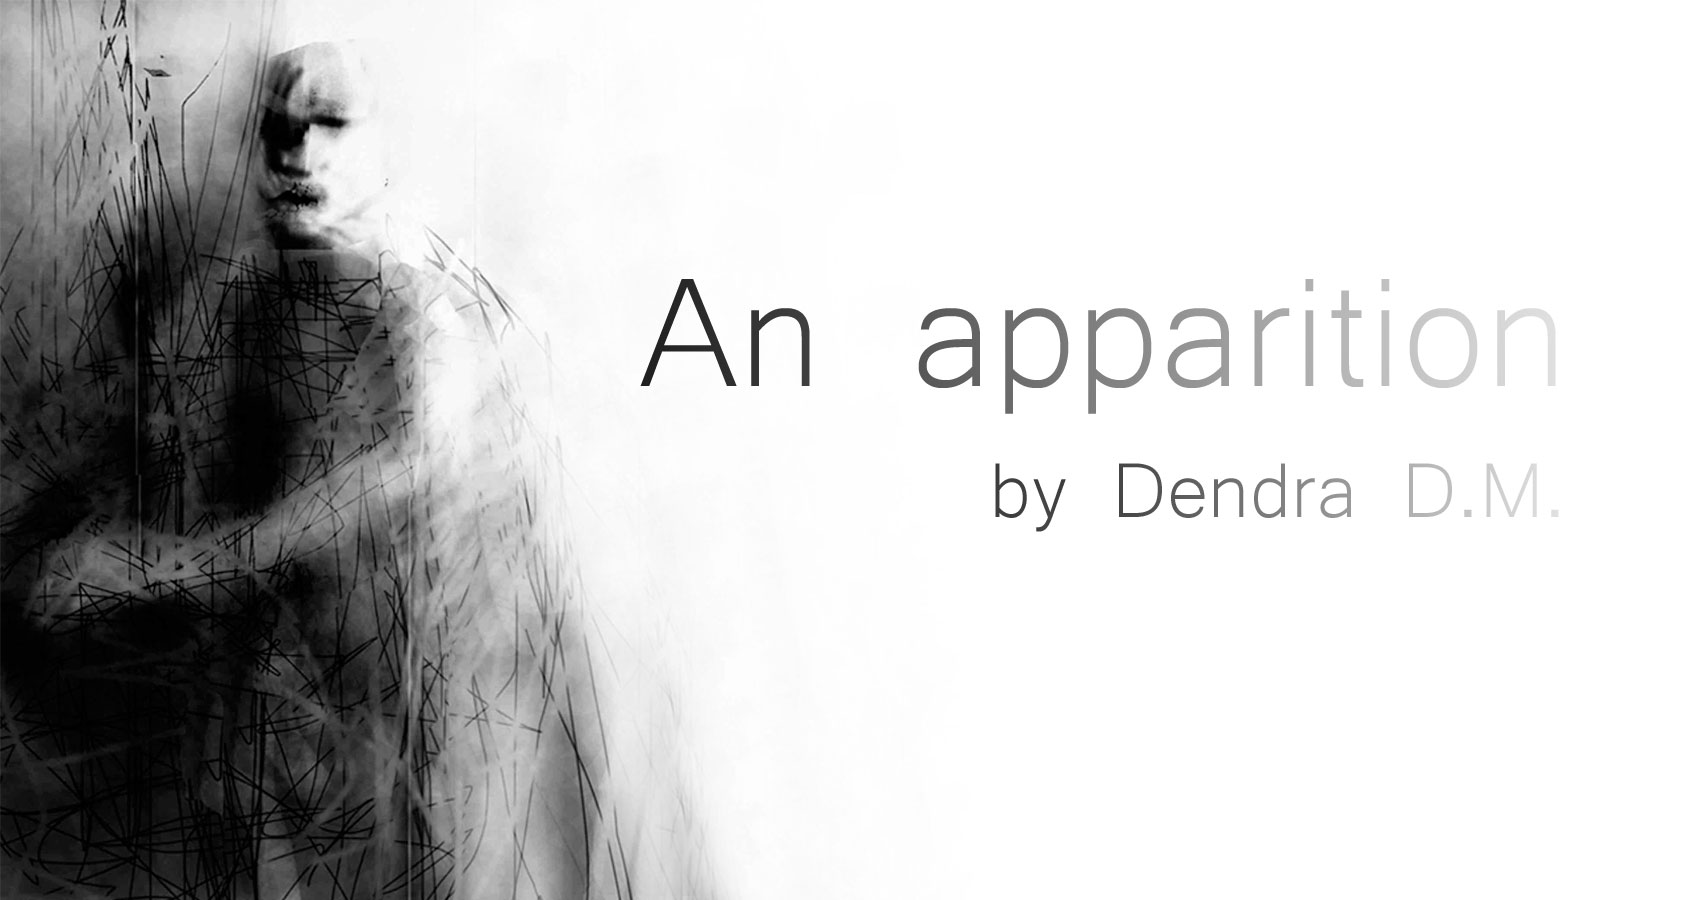 An Apparition by Dendra D.M. at Spillwords.com